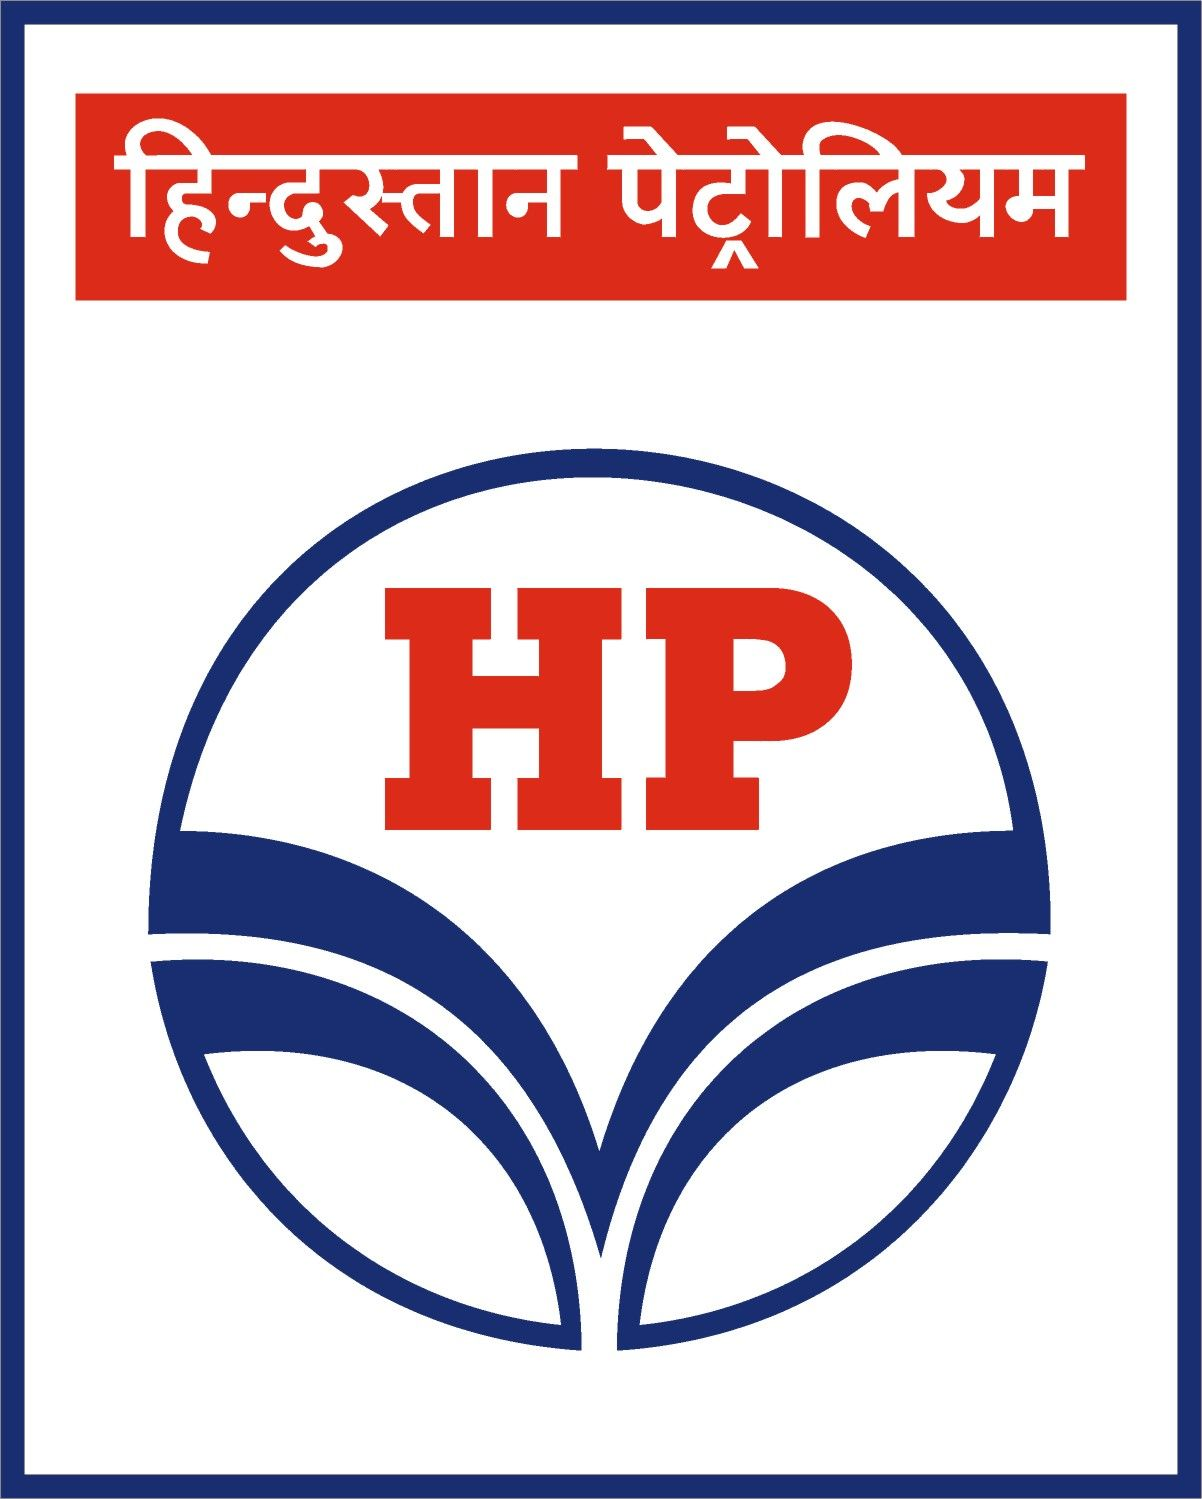 Hpcl logo clipart clipart black and white stock HPCL - Hindustan Petroleum Corp. Ltd. logo | Hp in 2019 ... clipart black and white stock